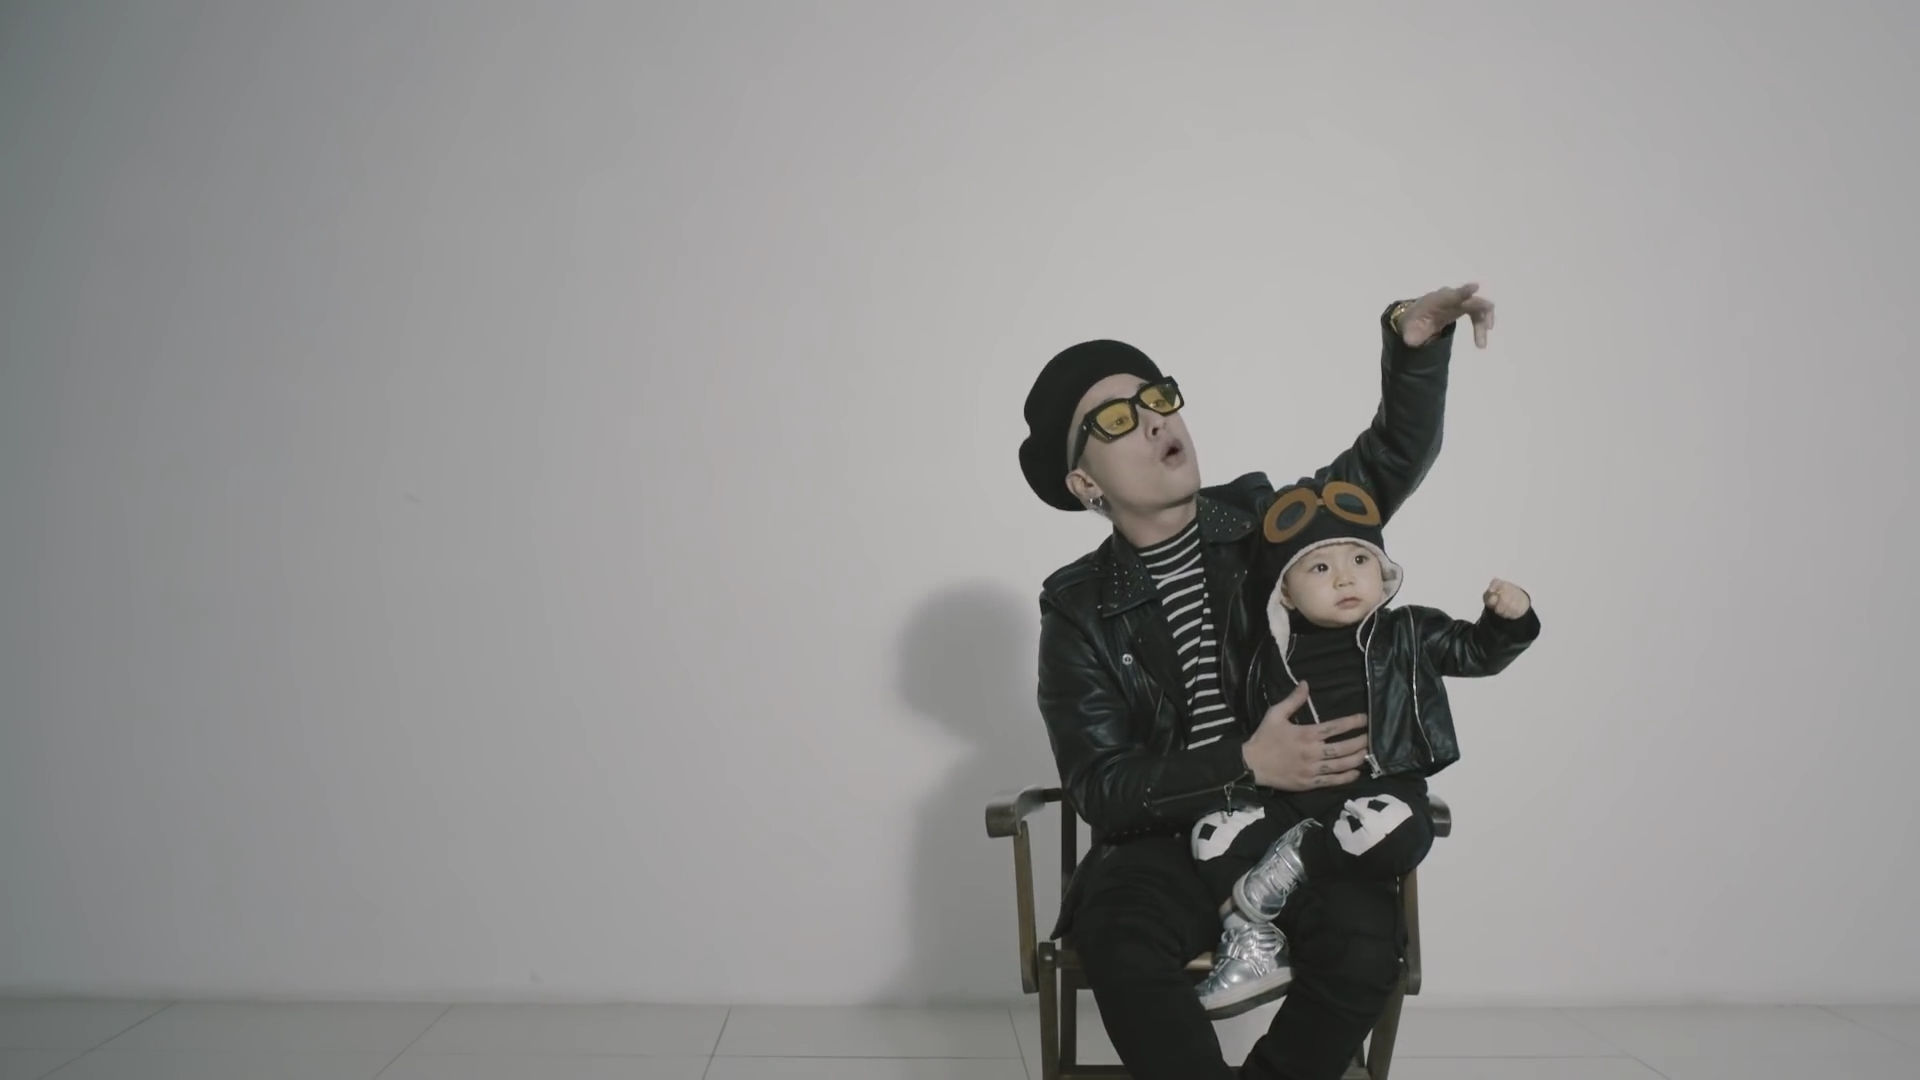 Hold up! Babies don't belong in a rap music video.